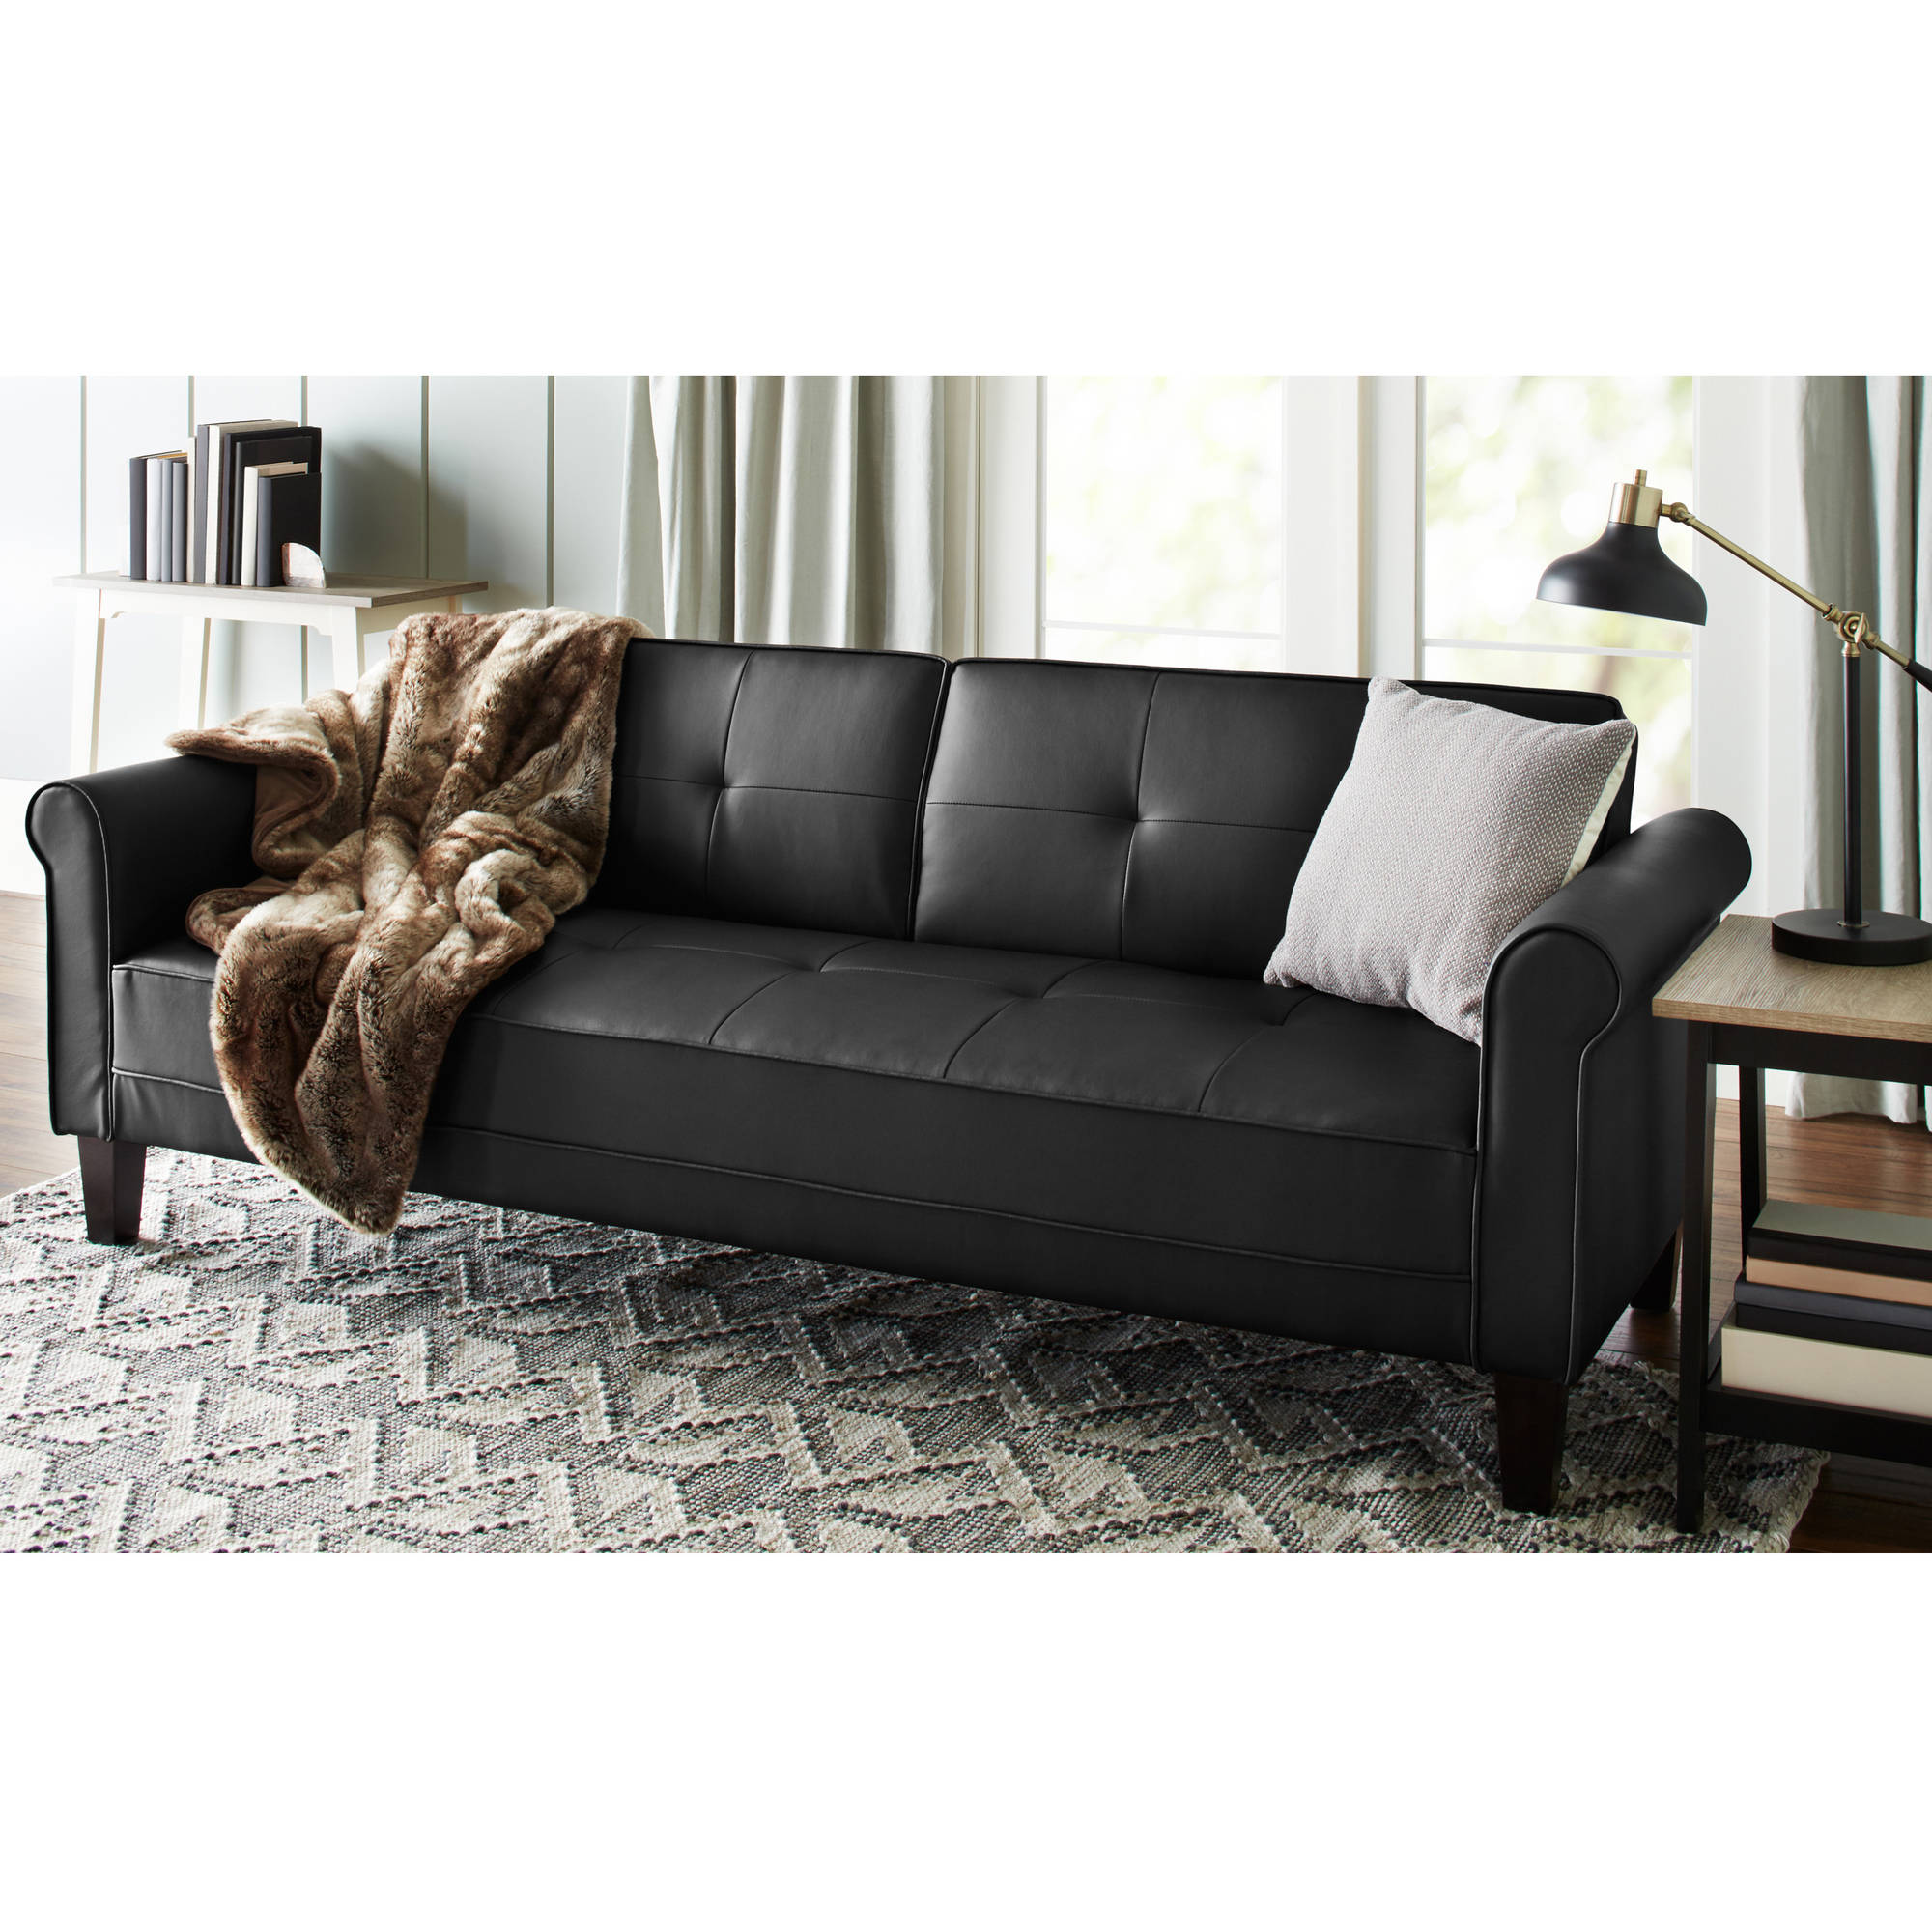 Superbe 10 Spring Street Ashton Faux Leather Sofa Bed